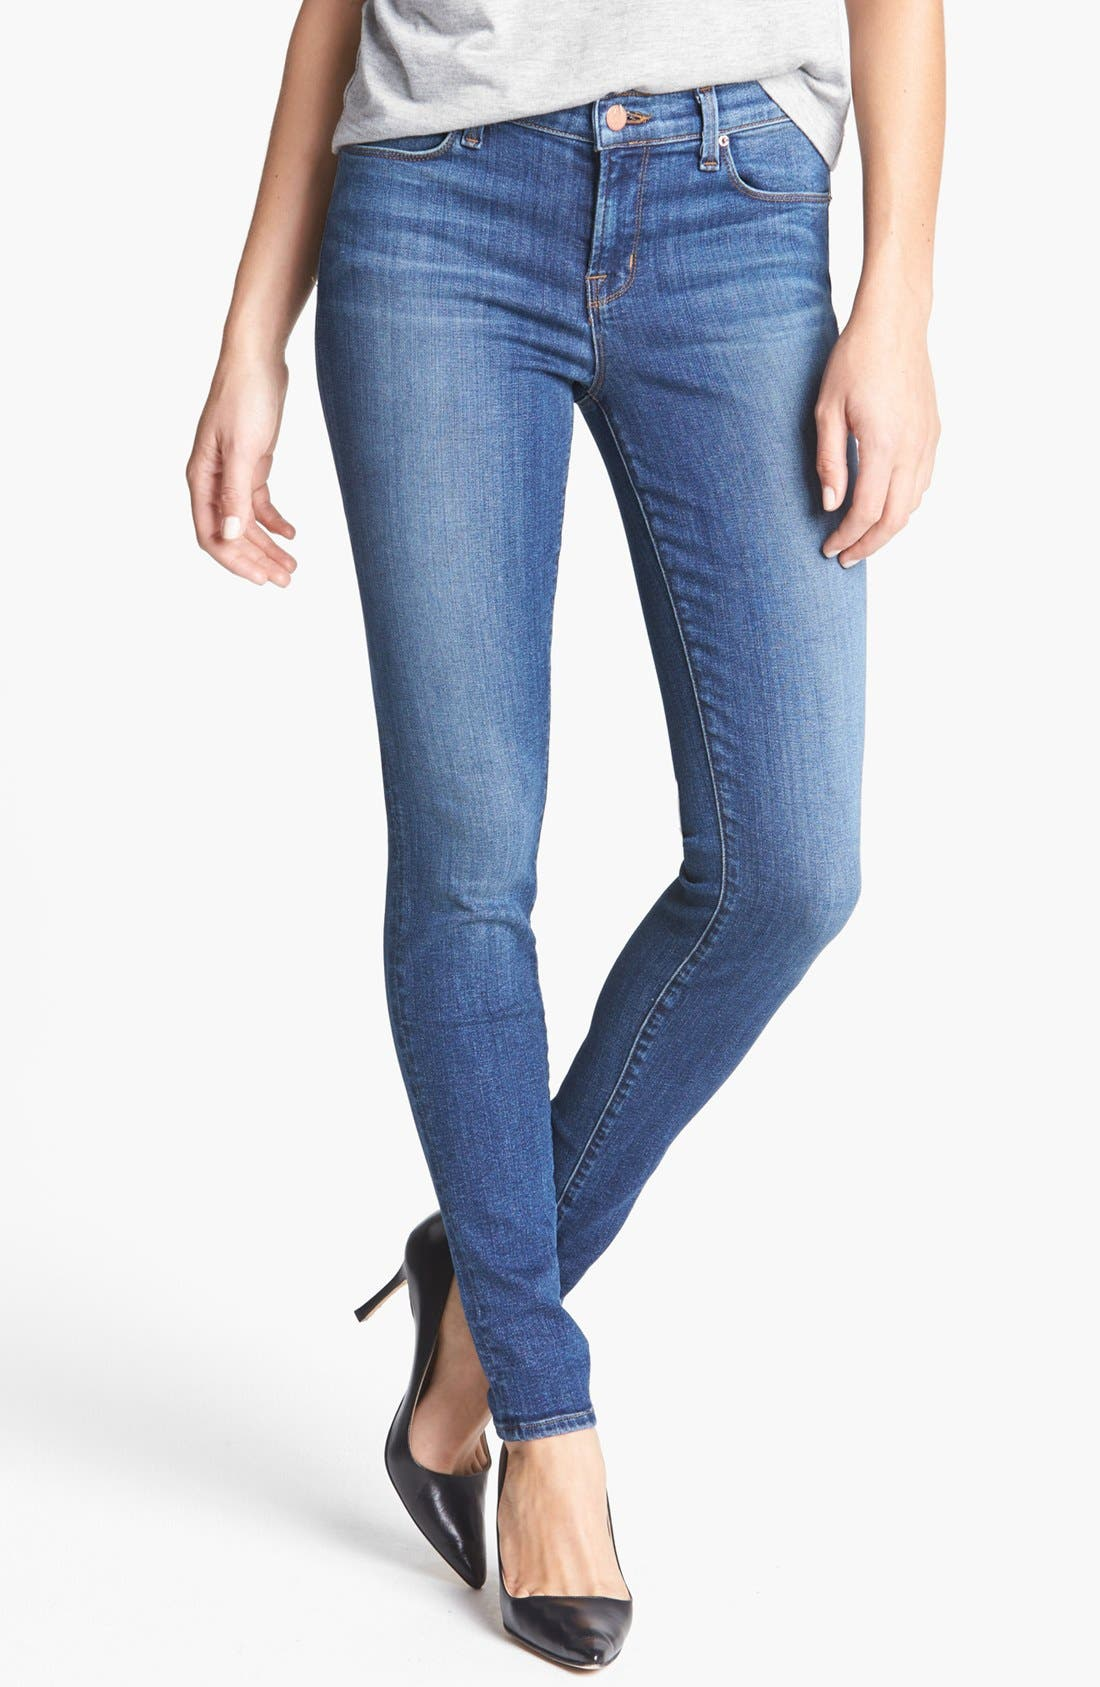 Alternate Image 1 Selected - J Brand '620' Mid-Rise Skinny Jeans (Refuge)